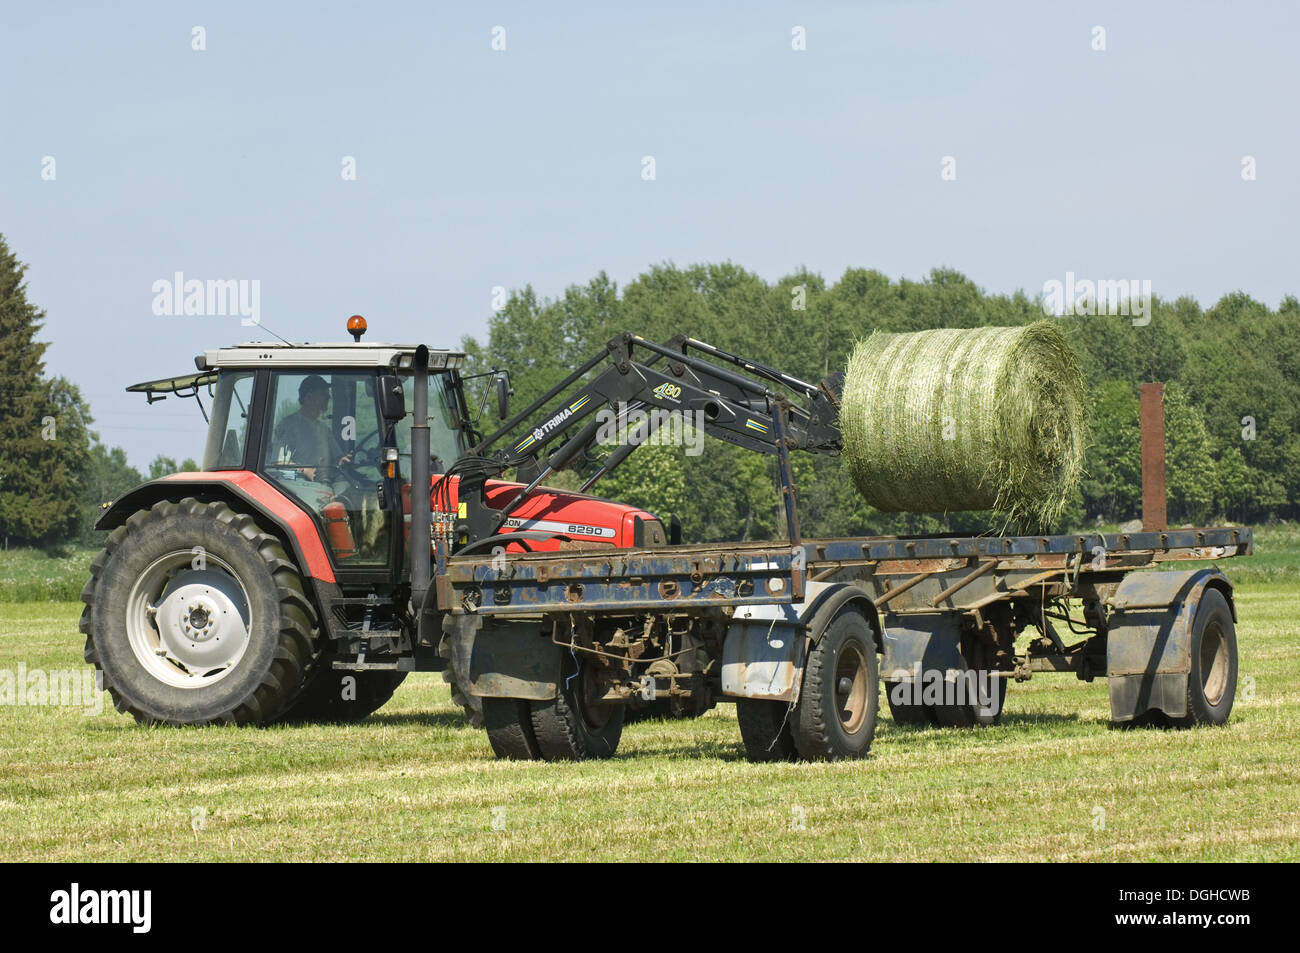 Round silage bales, loaded onto trailer by Massey Ferguson 6290 tractor with front loader, Sweden Stock Photo